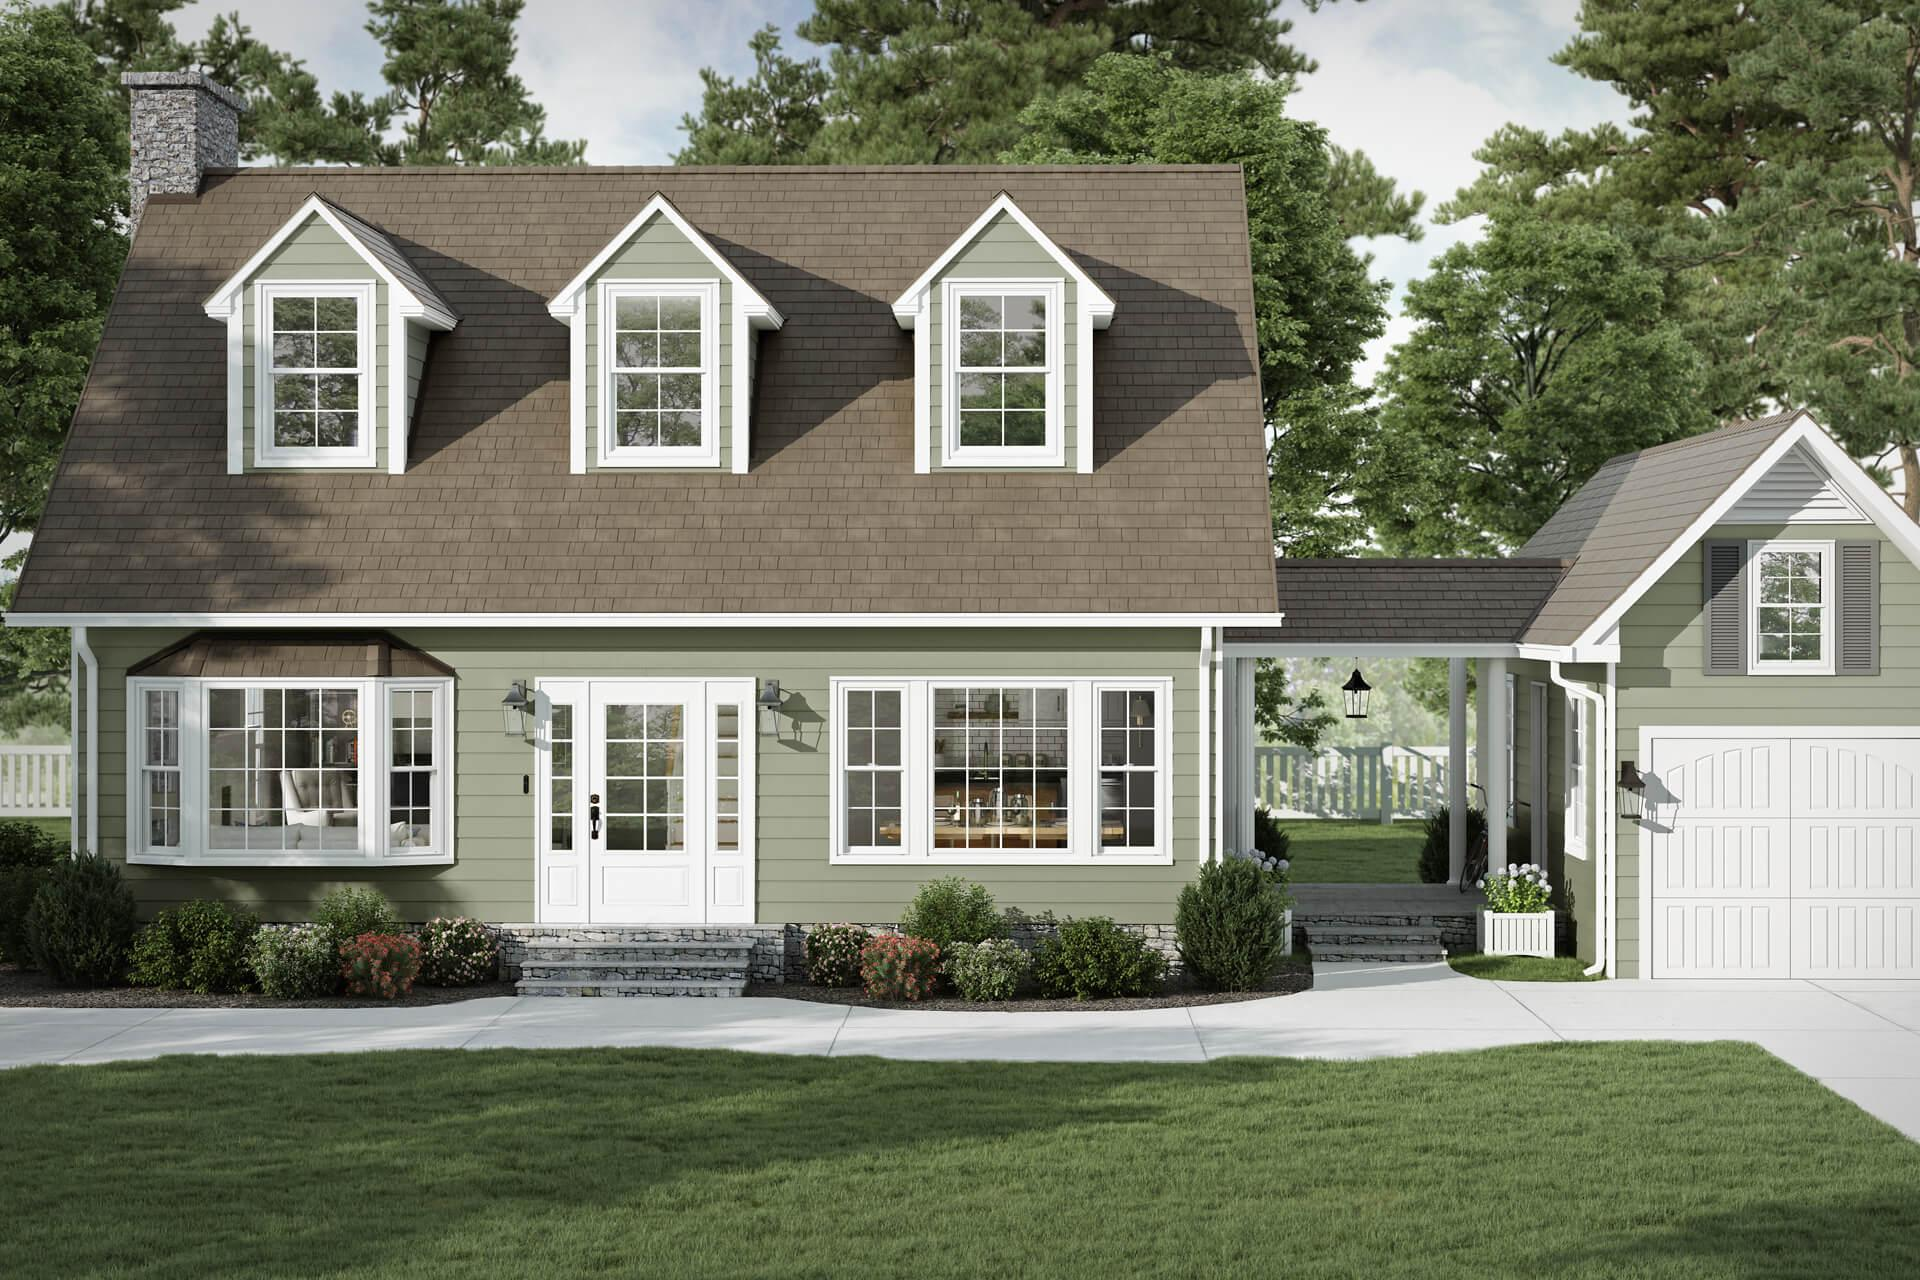 6 Reasons to Transform Your Home With Vinyl Siding